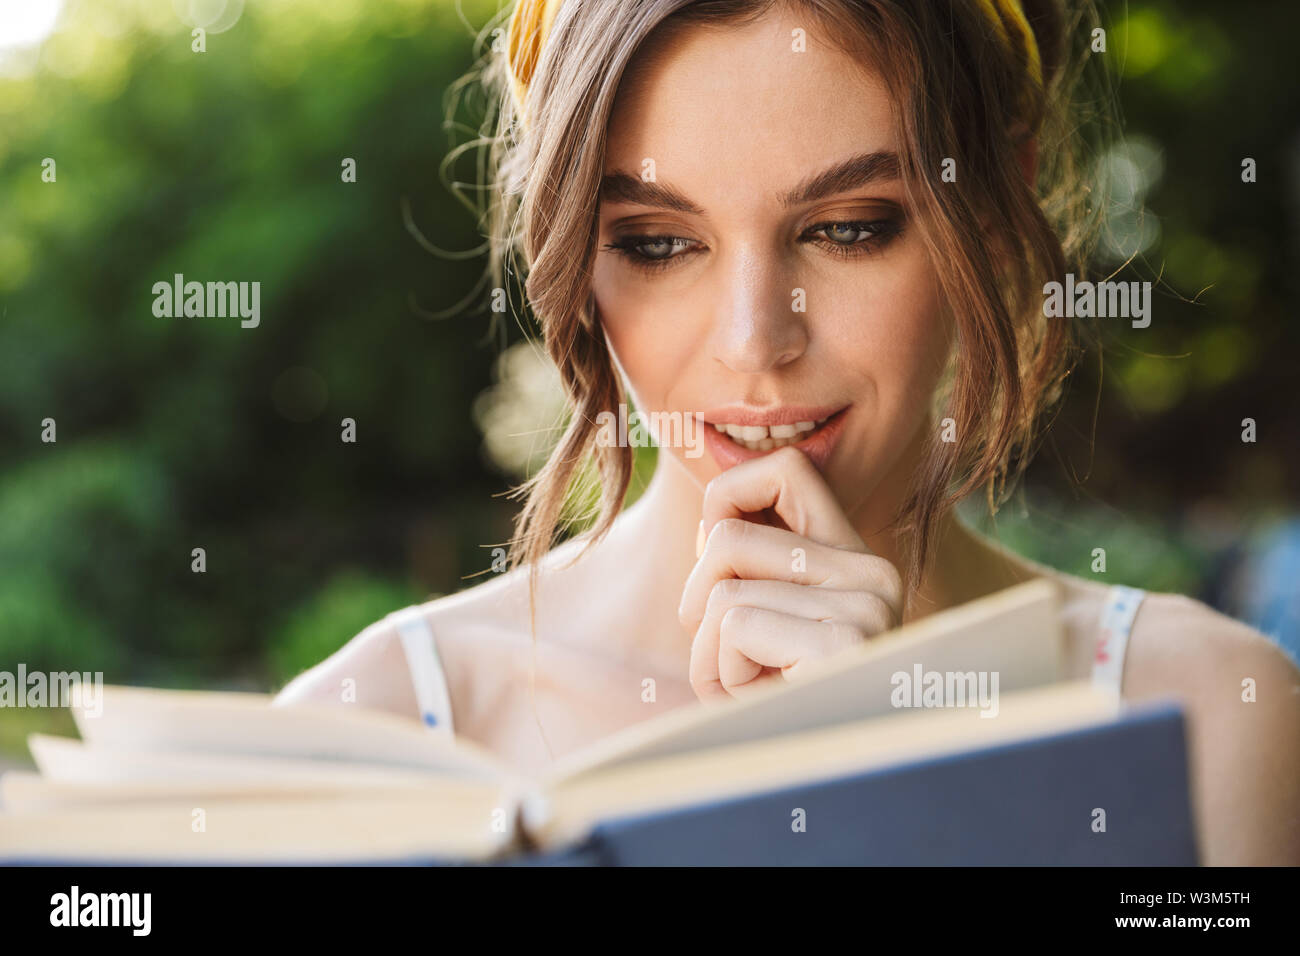 Photo of serious amazing pretty beautiful young woman in green park reading book. - Stock Image